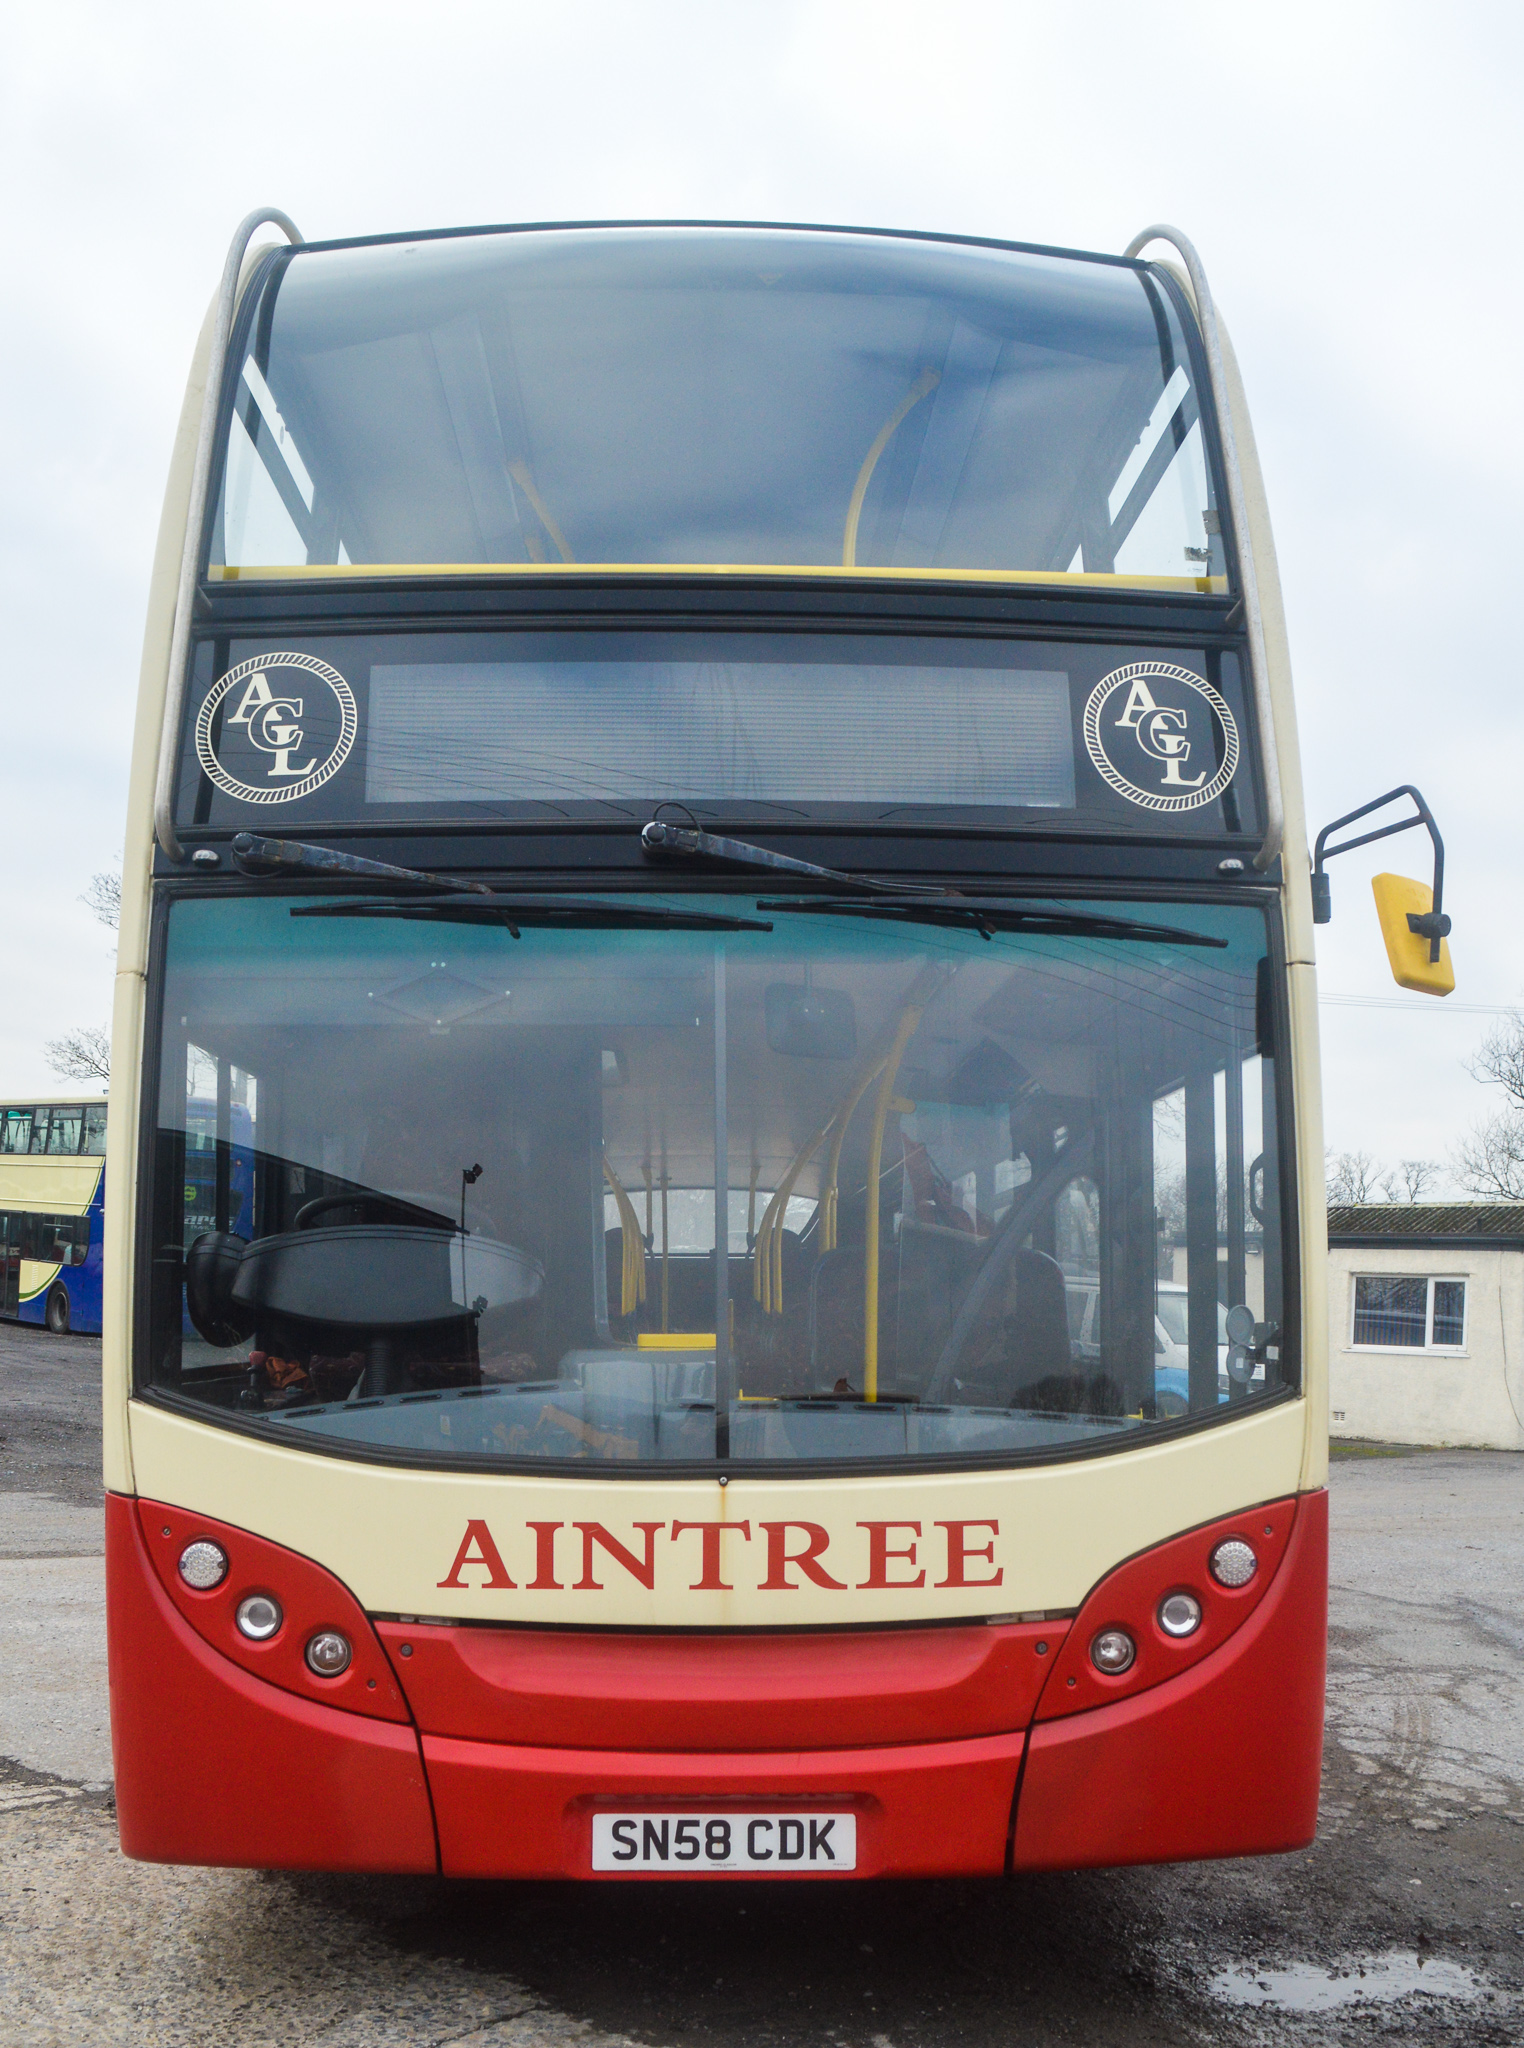 Lot 5 - Alexander Dennis Trident 2 Enviro 400 81 seat double deck service bus Registration Number: SN58